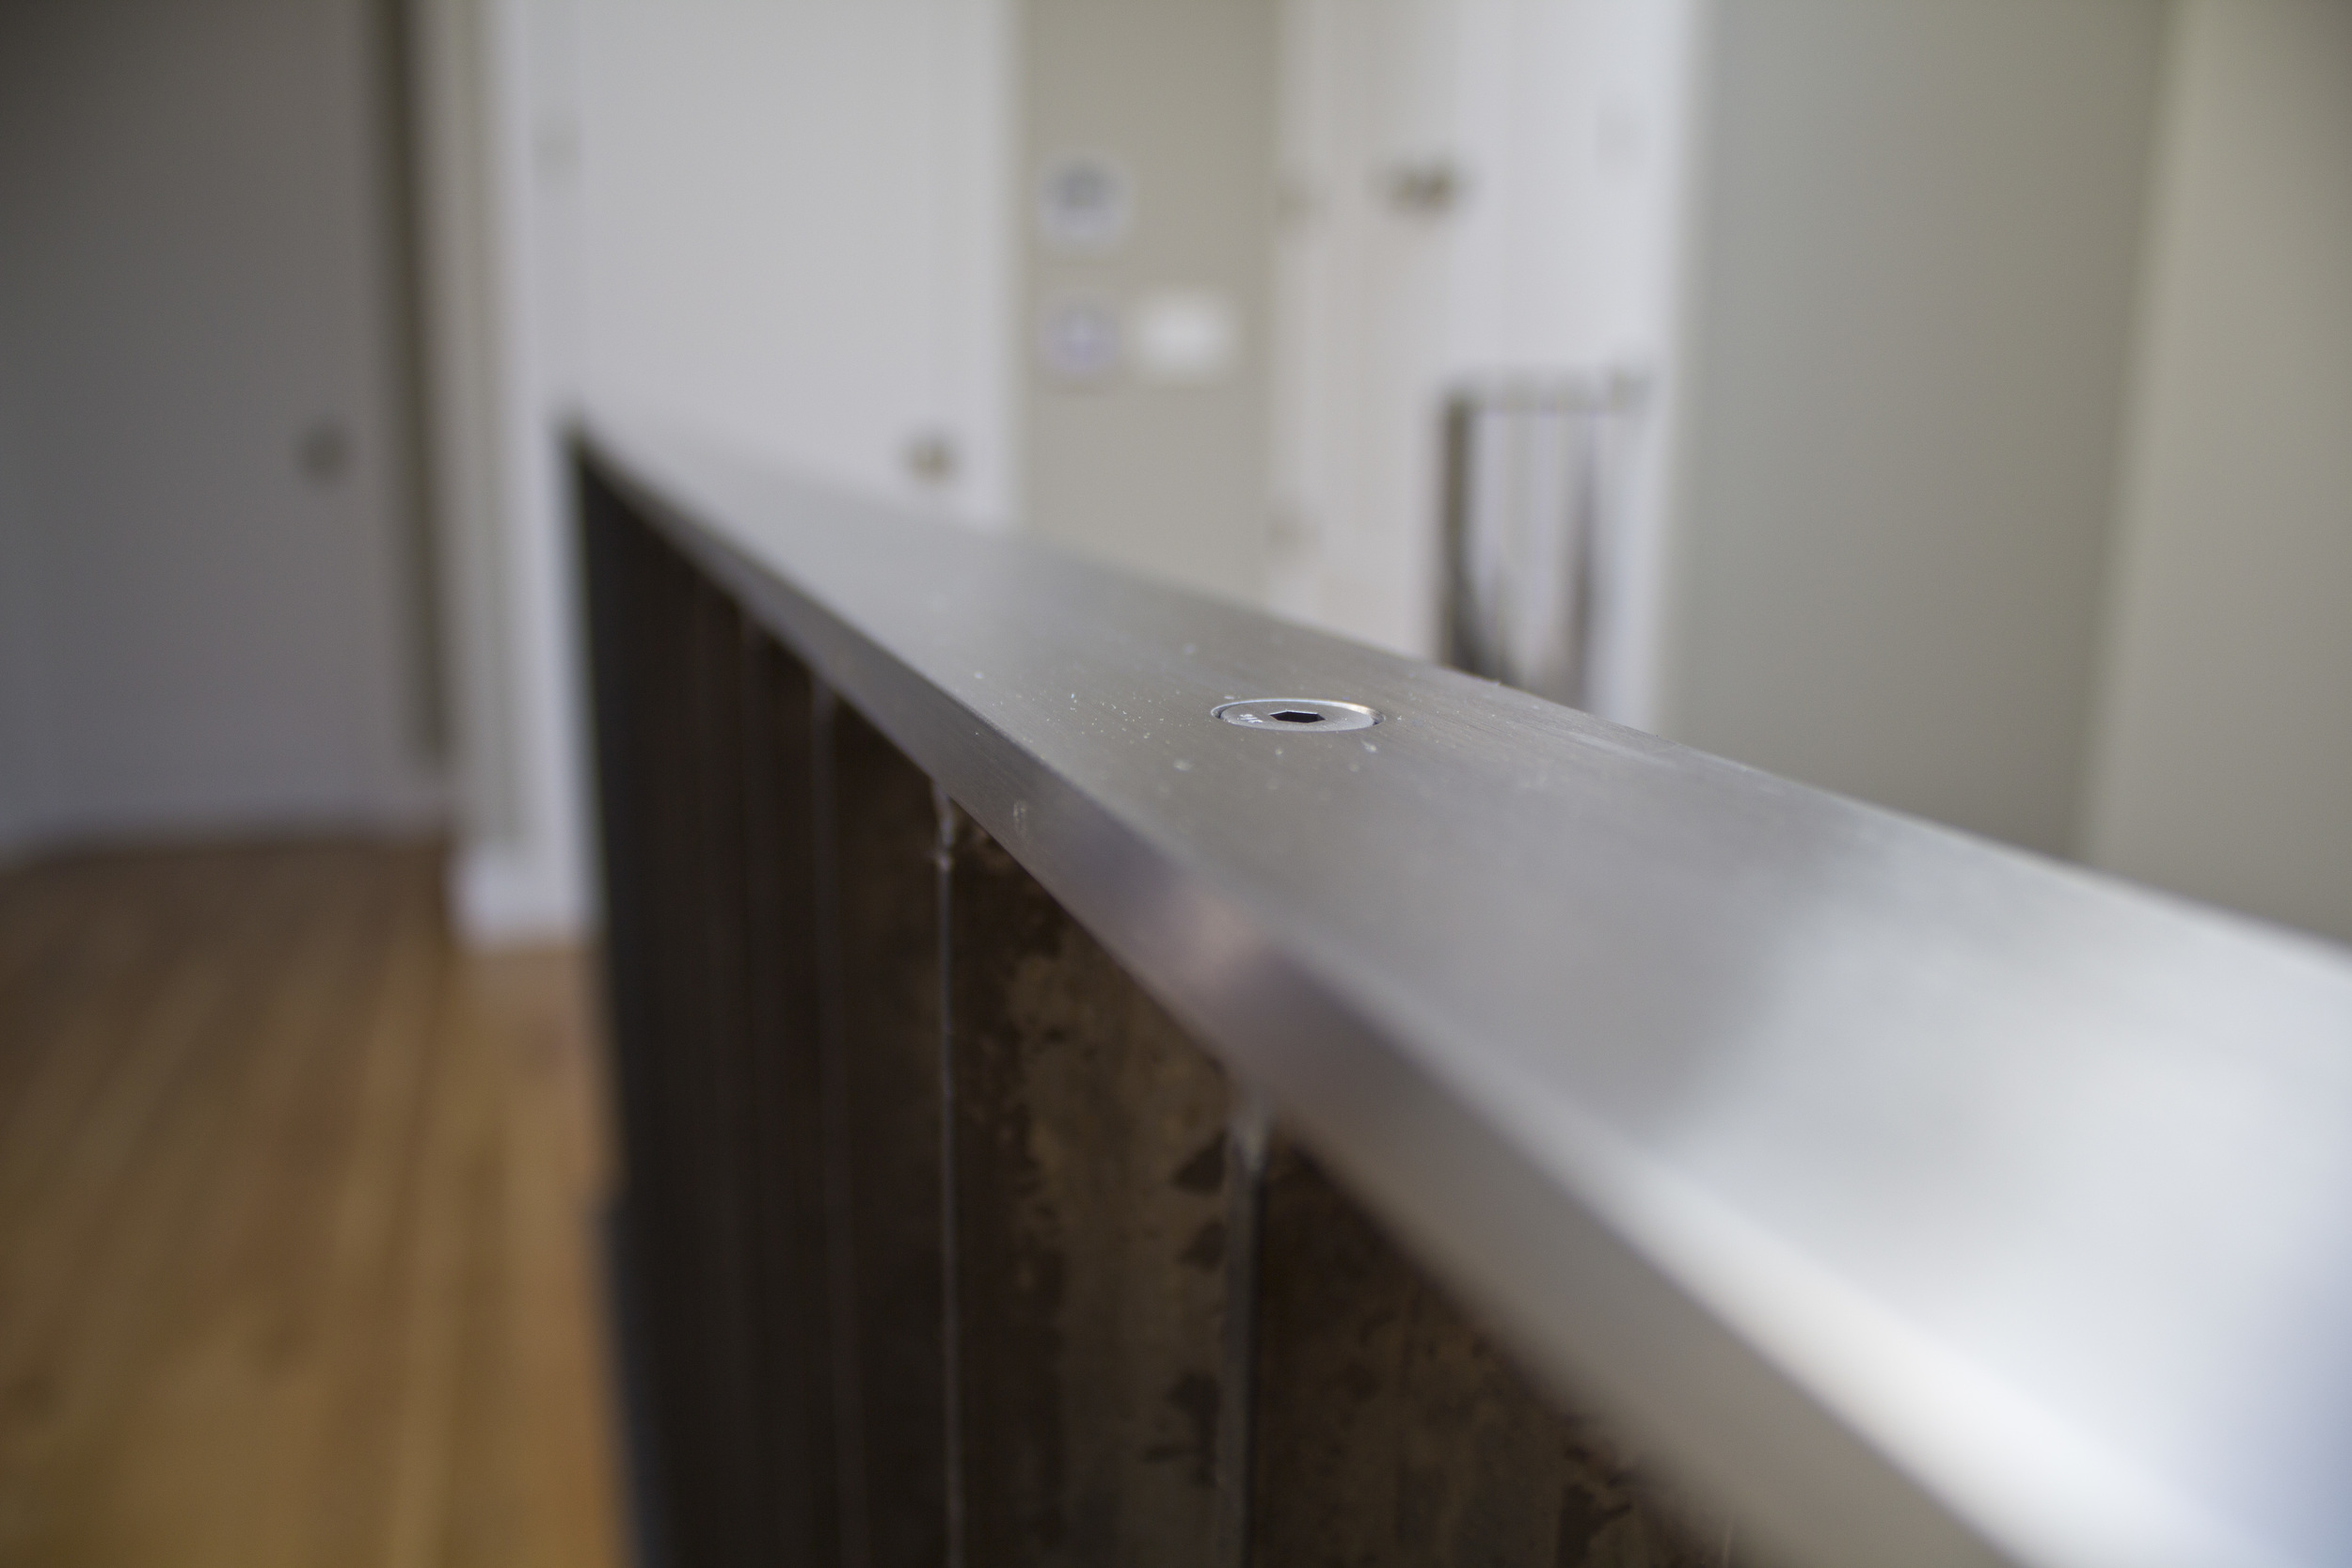 Guard rail in a remodeled San Francisco residence: polished stainless steel top rail mounted to a hot-rolled carbon steel picket weldment for aesthetic contrast.